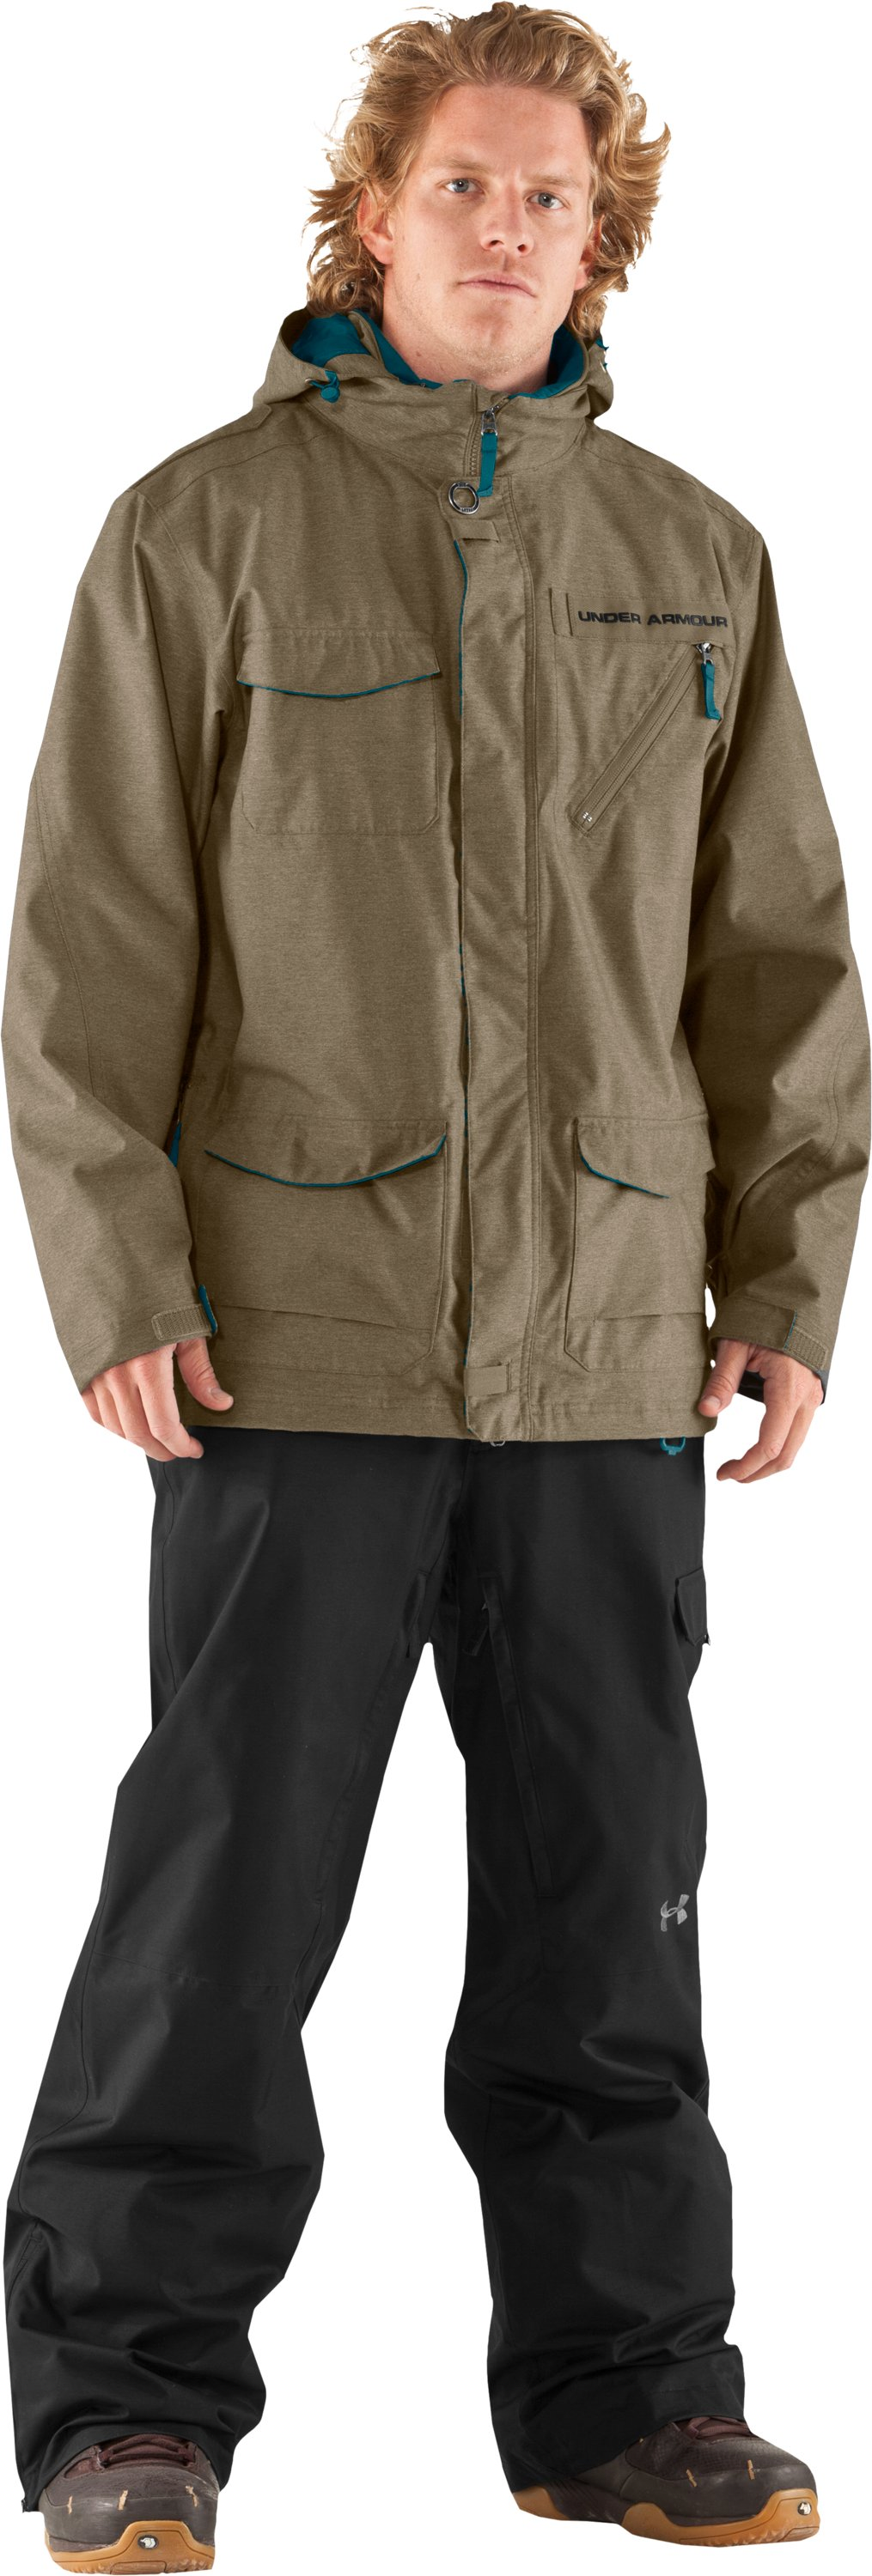 Men's UA Jackal Jacket, Barley